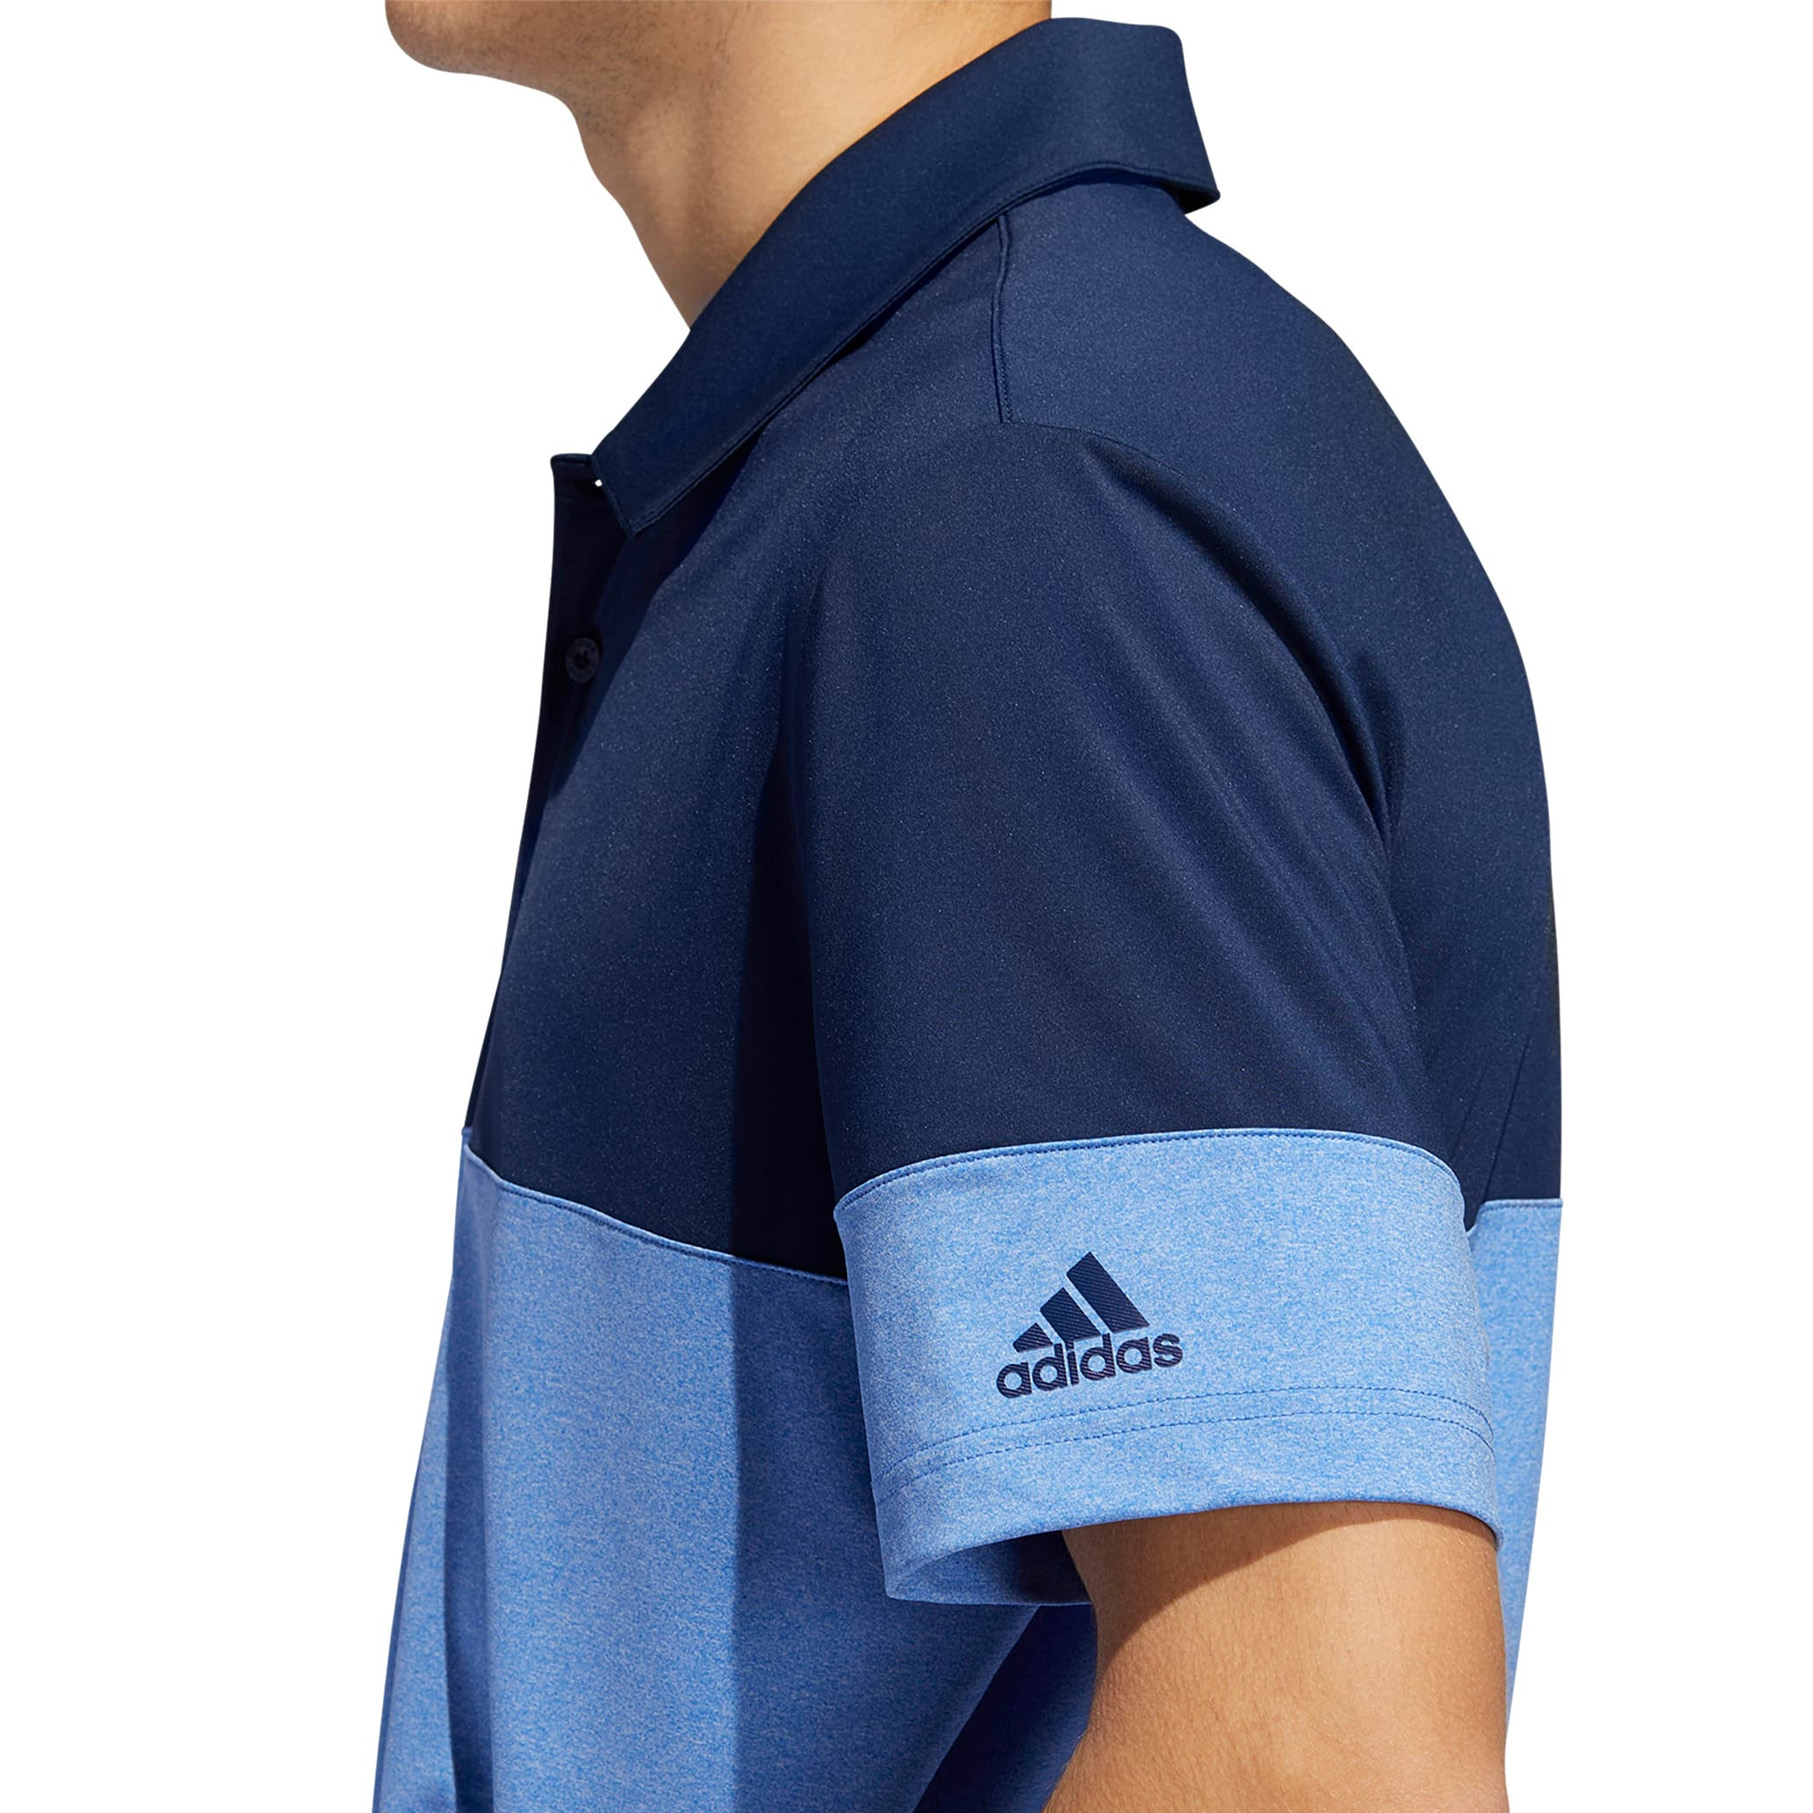 Adidas-Golf-Men-039-s-Ultimate-2-0-All-Day-Polo-Shirt-New thumbnail 11